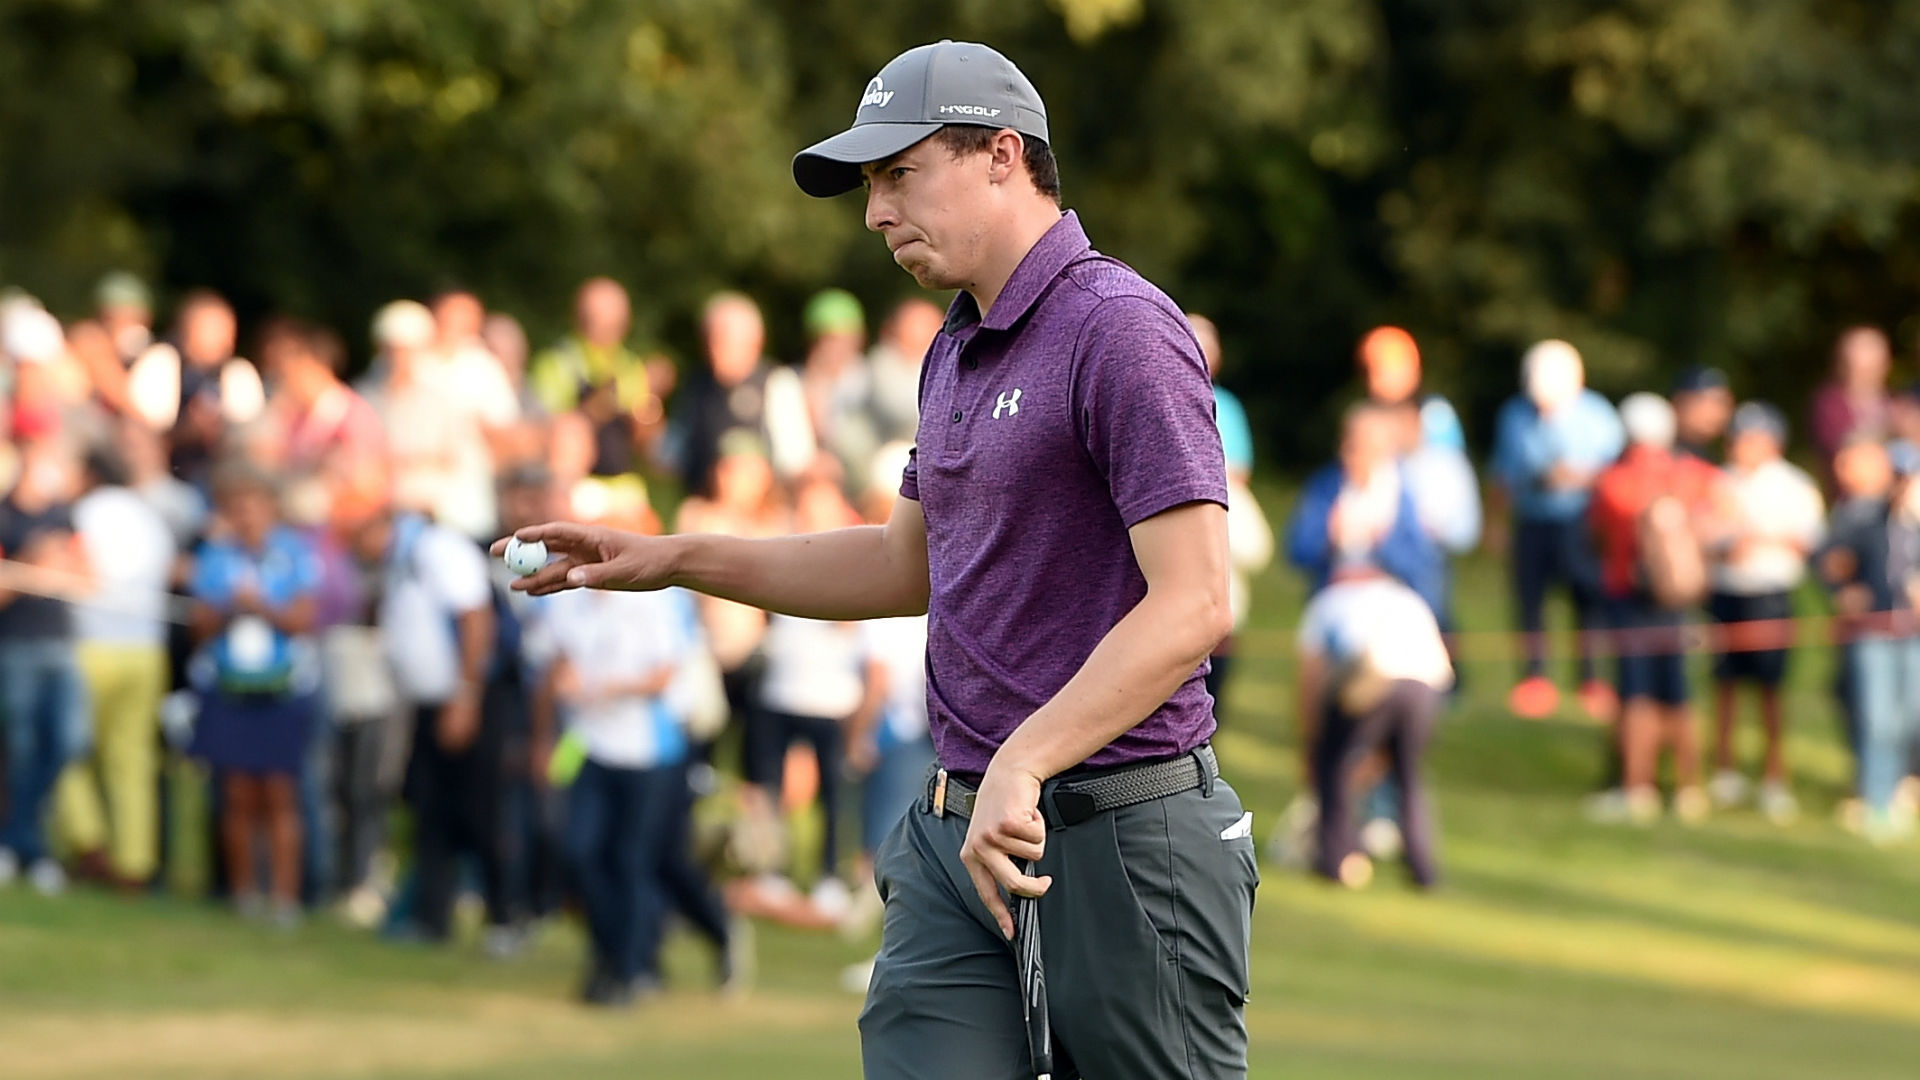 Fitzpatrick finishes strongly to regain lead in Rome